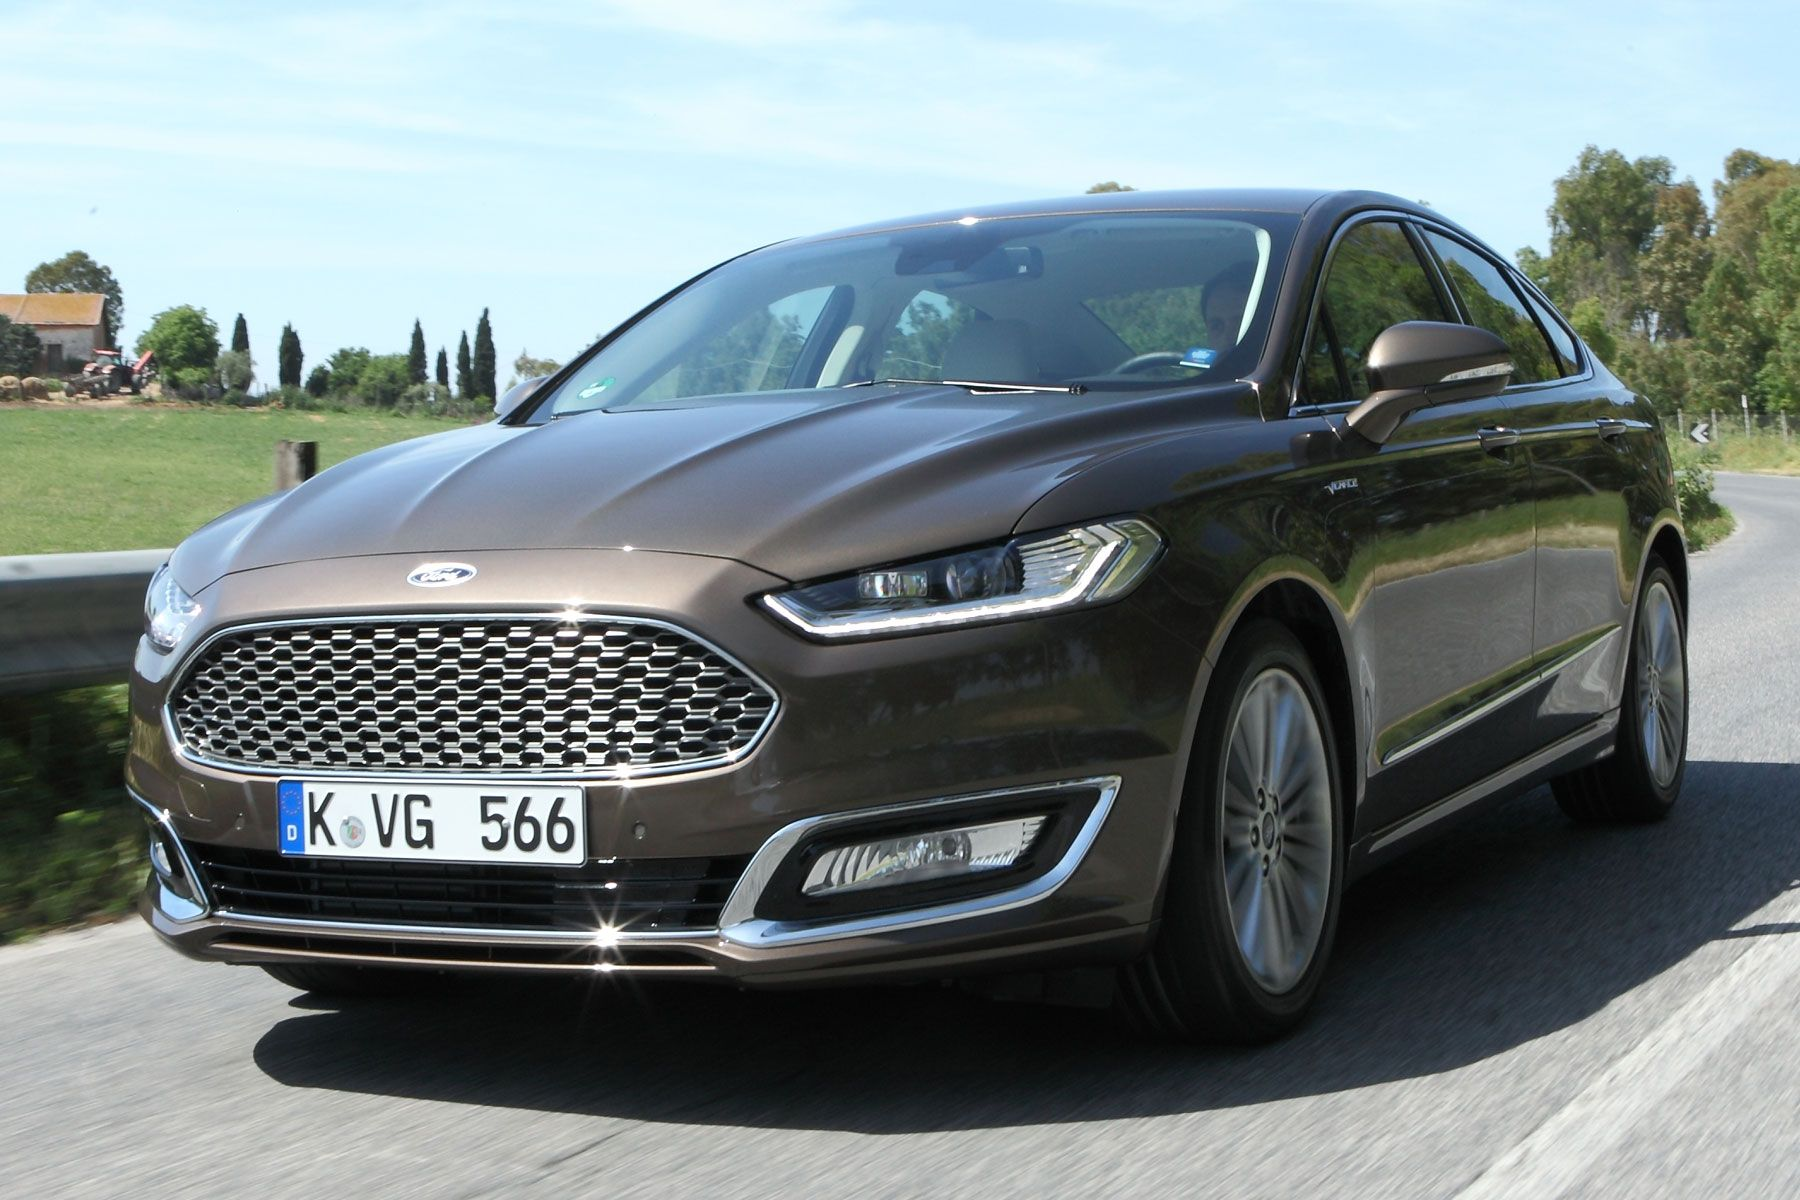 Ford Attempts To Take The Mondeo Upmarket With Its Vignale Don T Mention Ghia Ford Mondeo Ford Vignale Ford